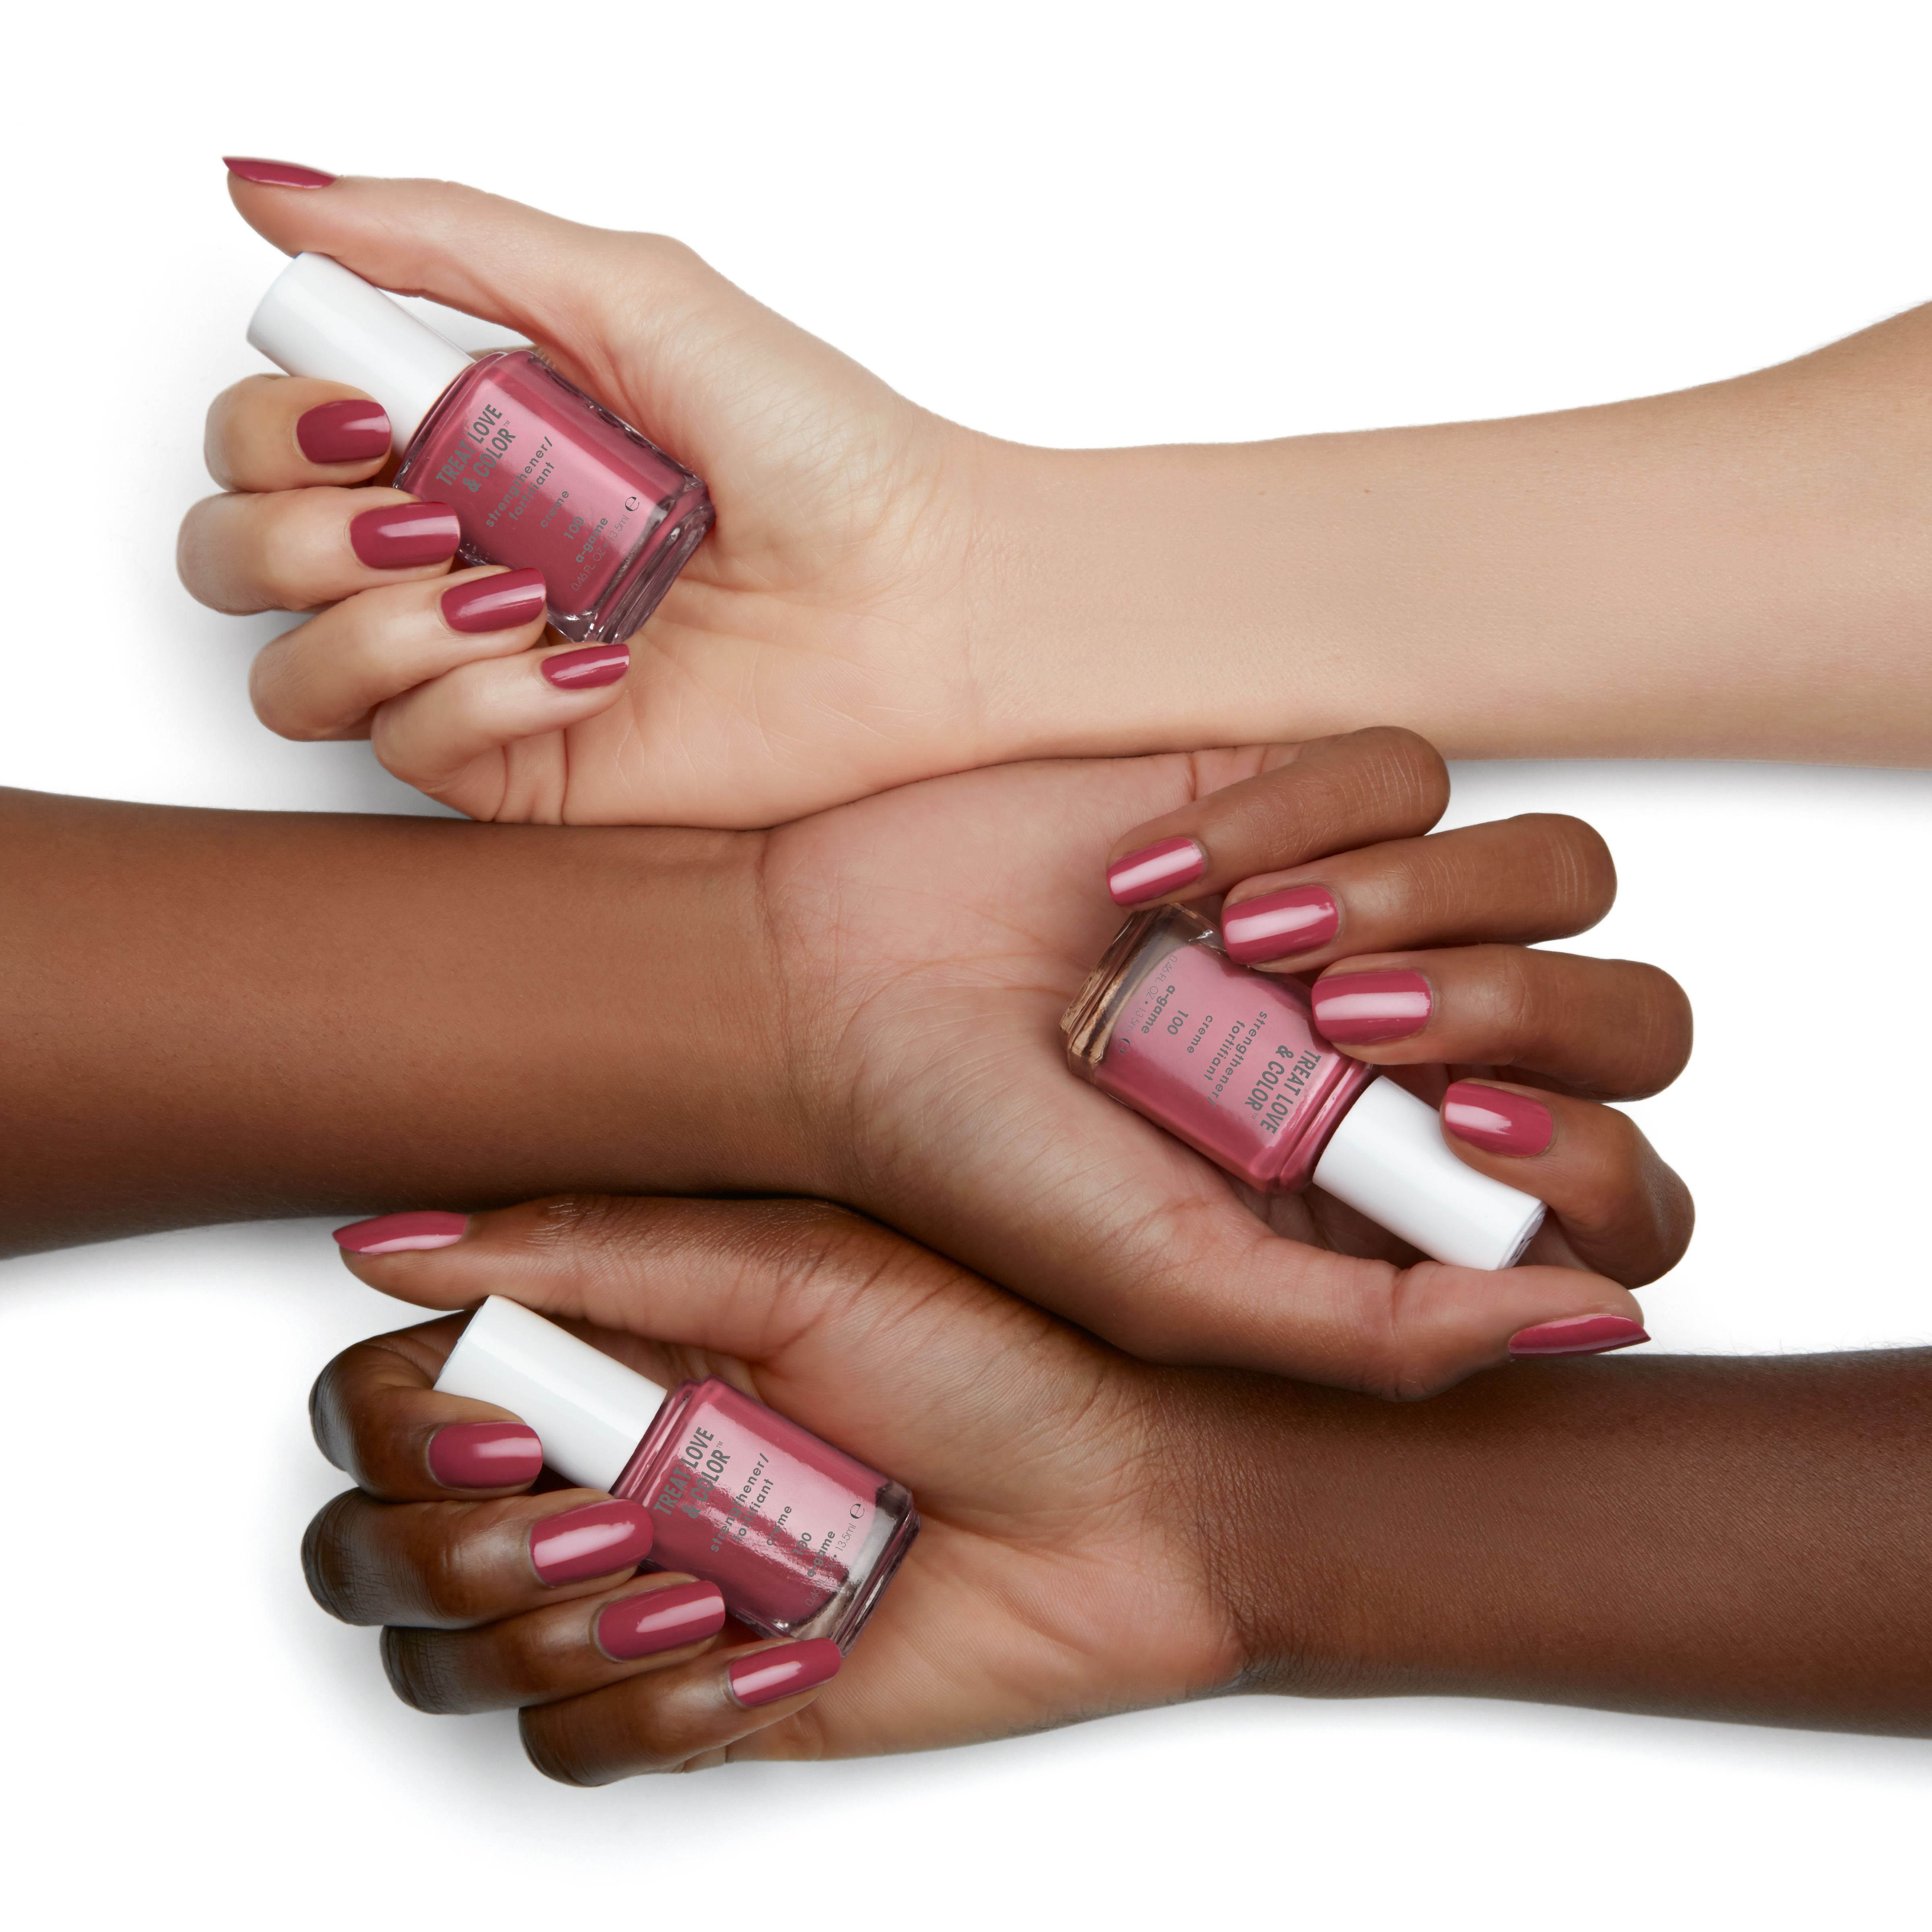 give your nails some TLC with NEW treat love & color. get your \'a ...